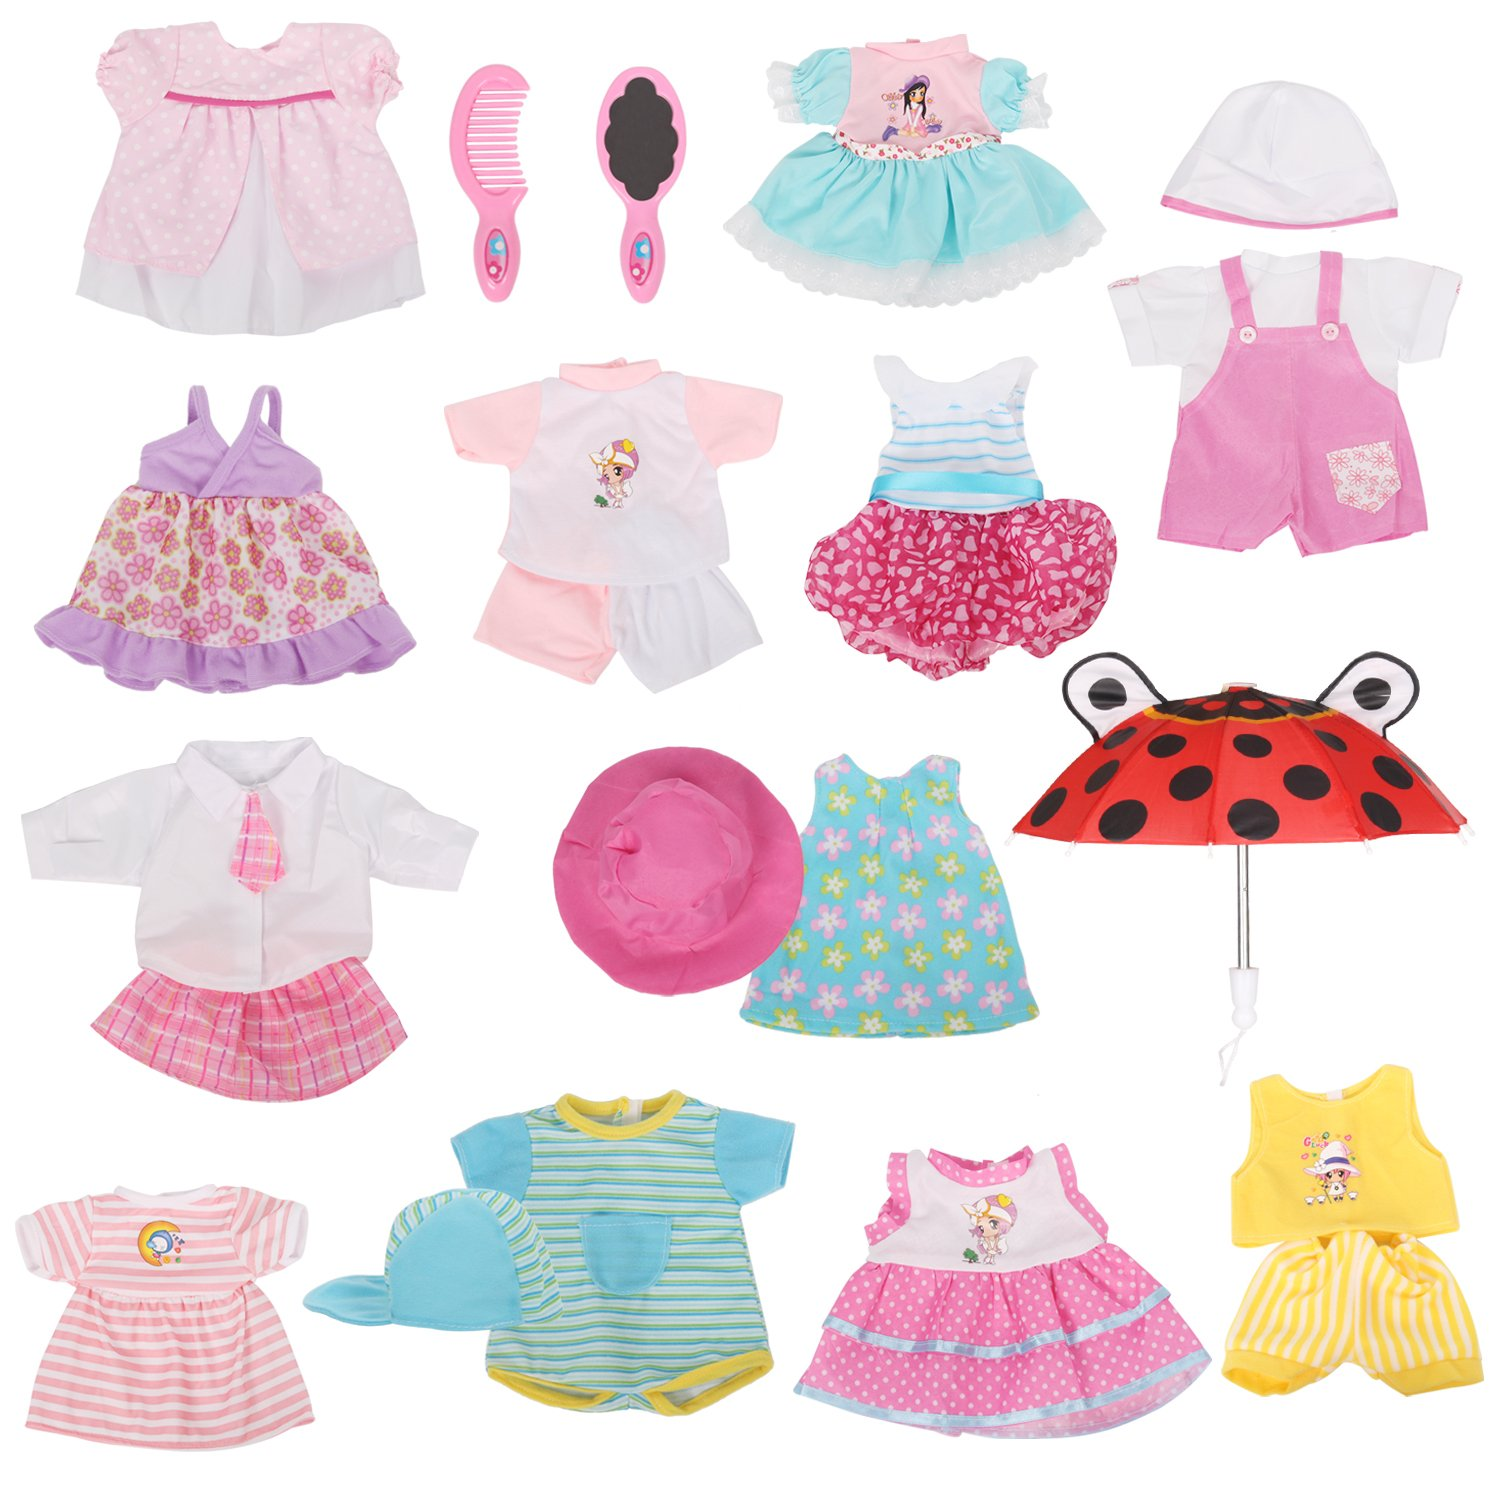 Huang Cheng Toys 12 Pcs Set Handmade Lovely Baby Doll Clothes Dress Outfits Costumes for 14 to 18-inch American Girl Cloth Hat Cap Umbrella Mirror Comb Girl Christmas Birthday Gift for Little Girl